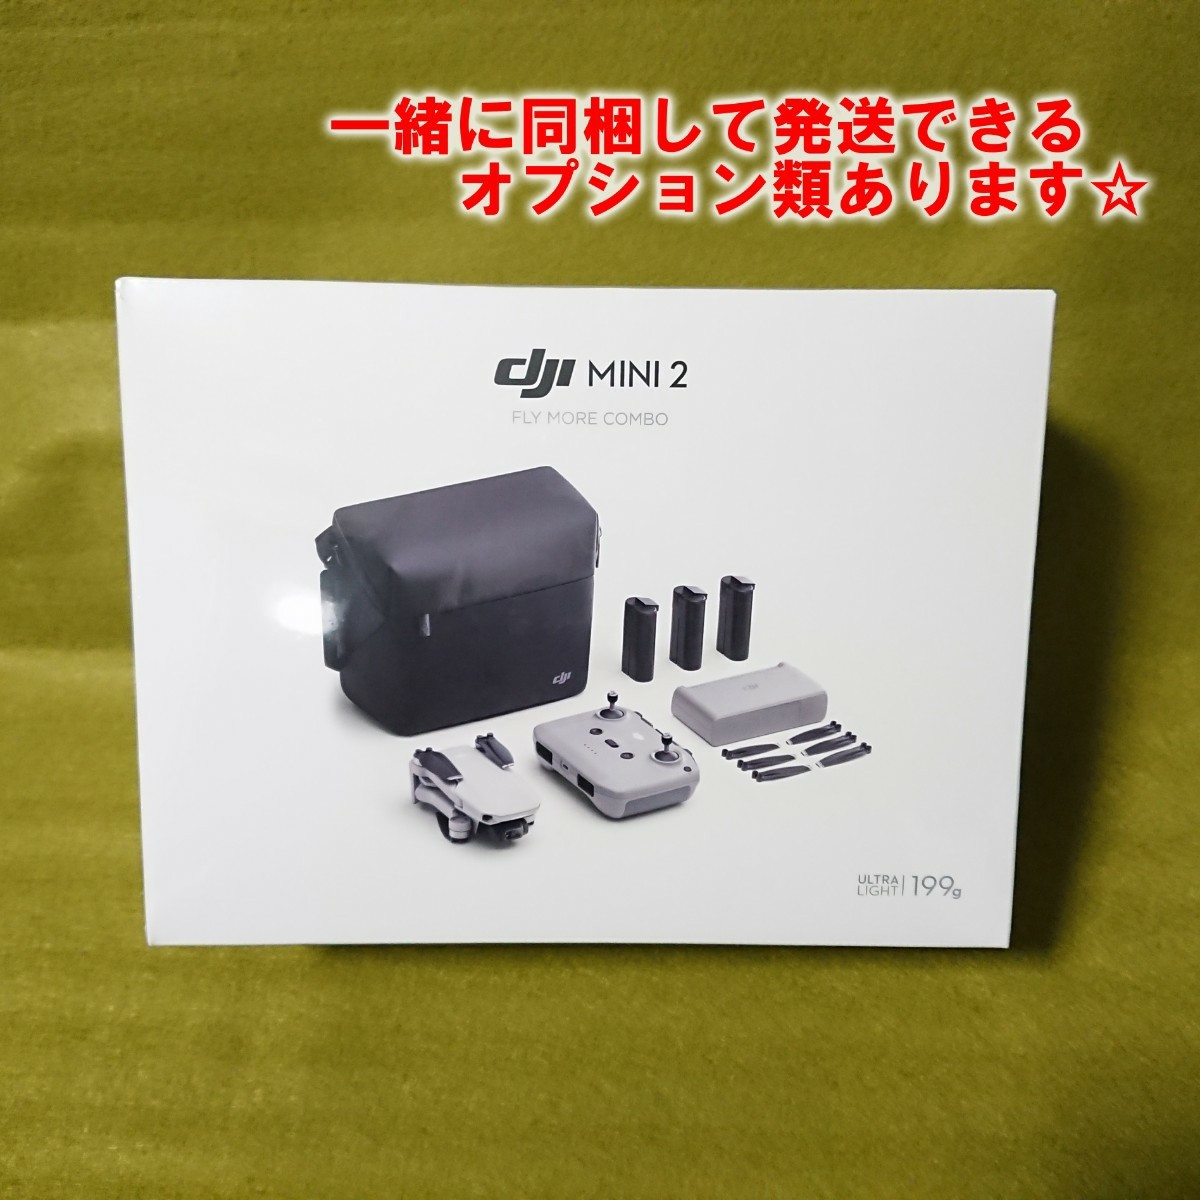 新品未開封 DJI Mini 2 Fly More Combo